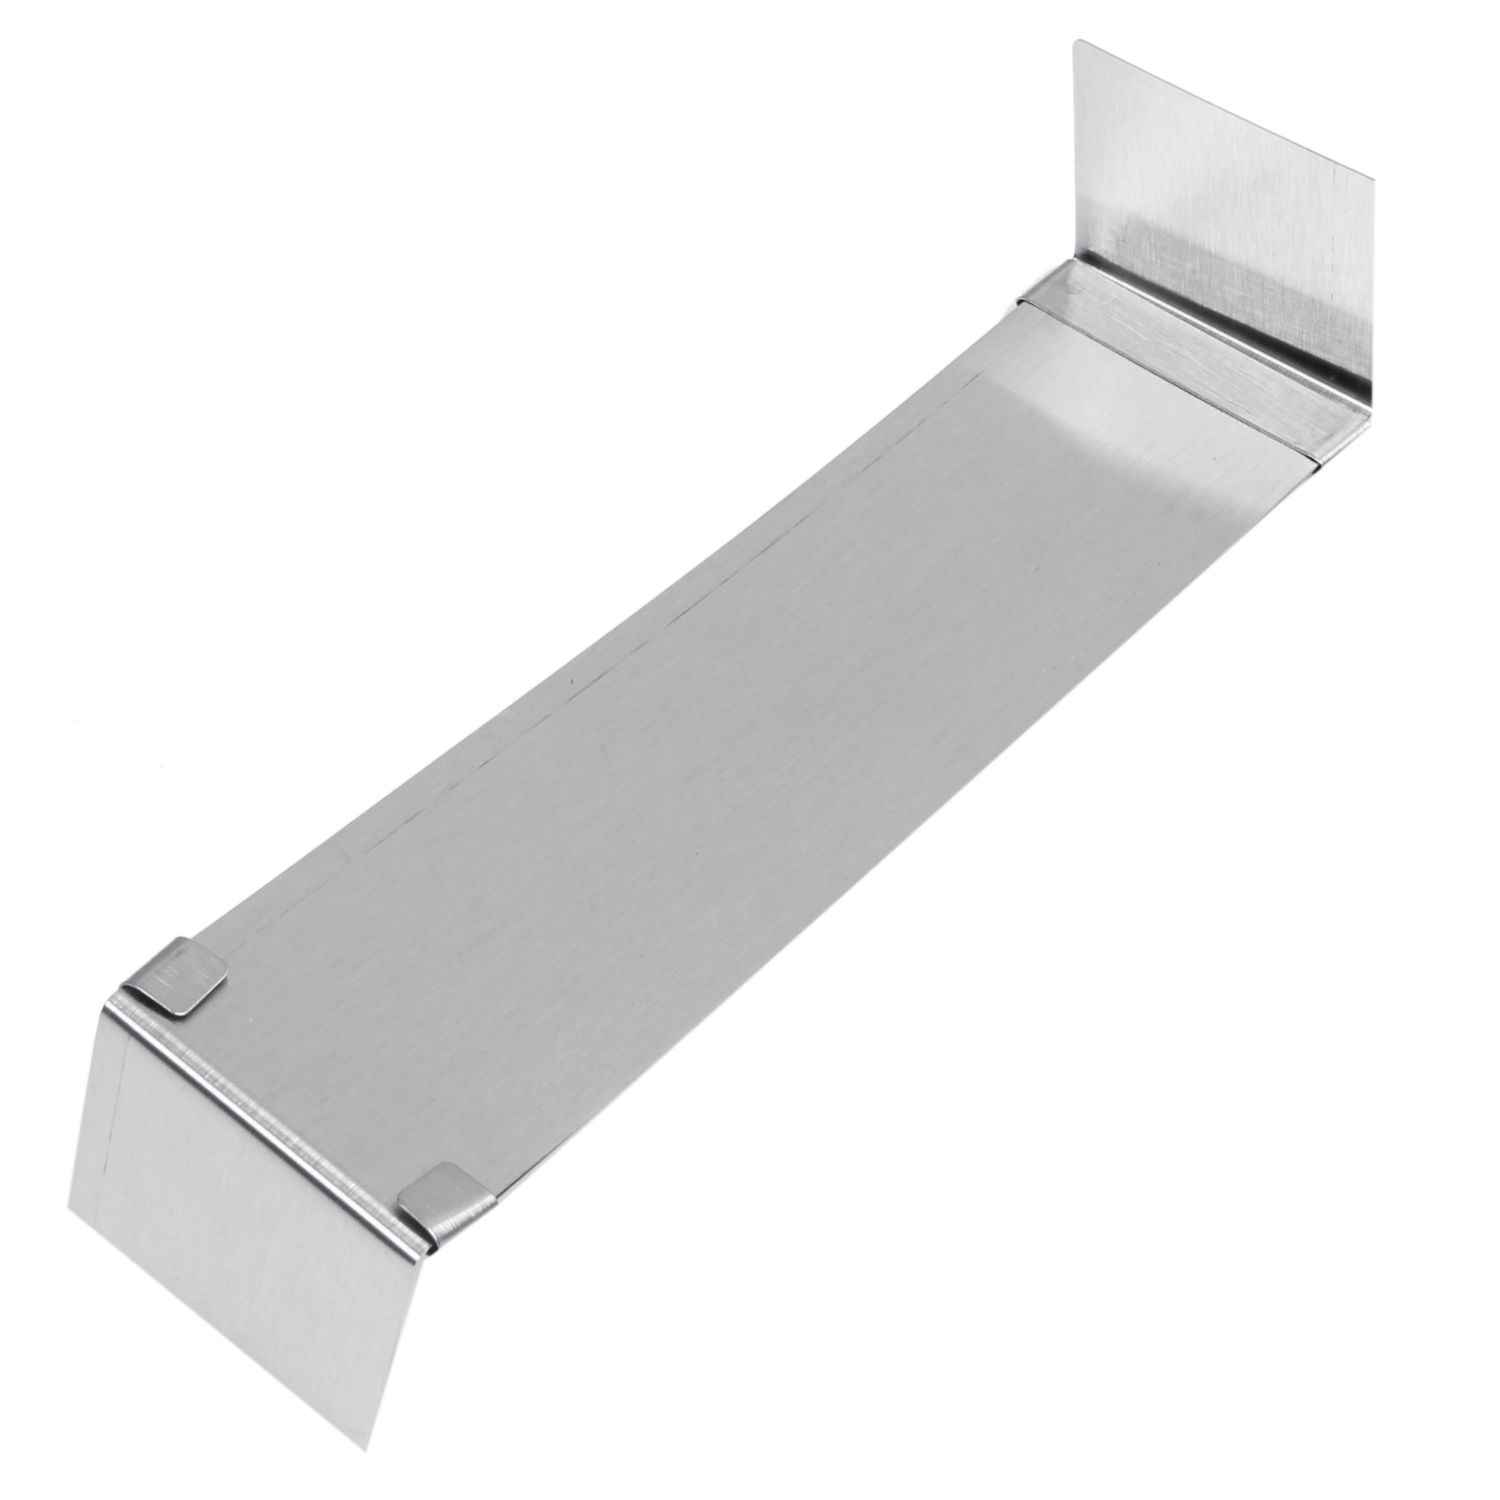 Silver Color Stainless Steel Adjustable Rectangular Cake Pan Stainless Steel Non-Stick Baking Cake Molds Kitchen Tools